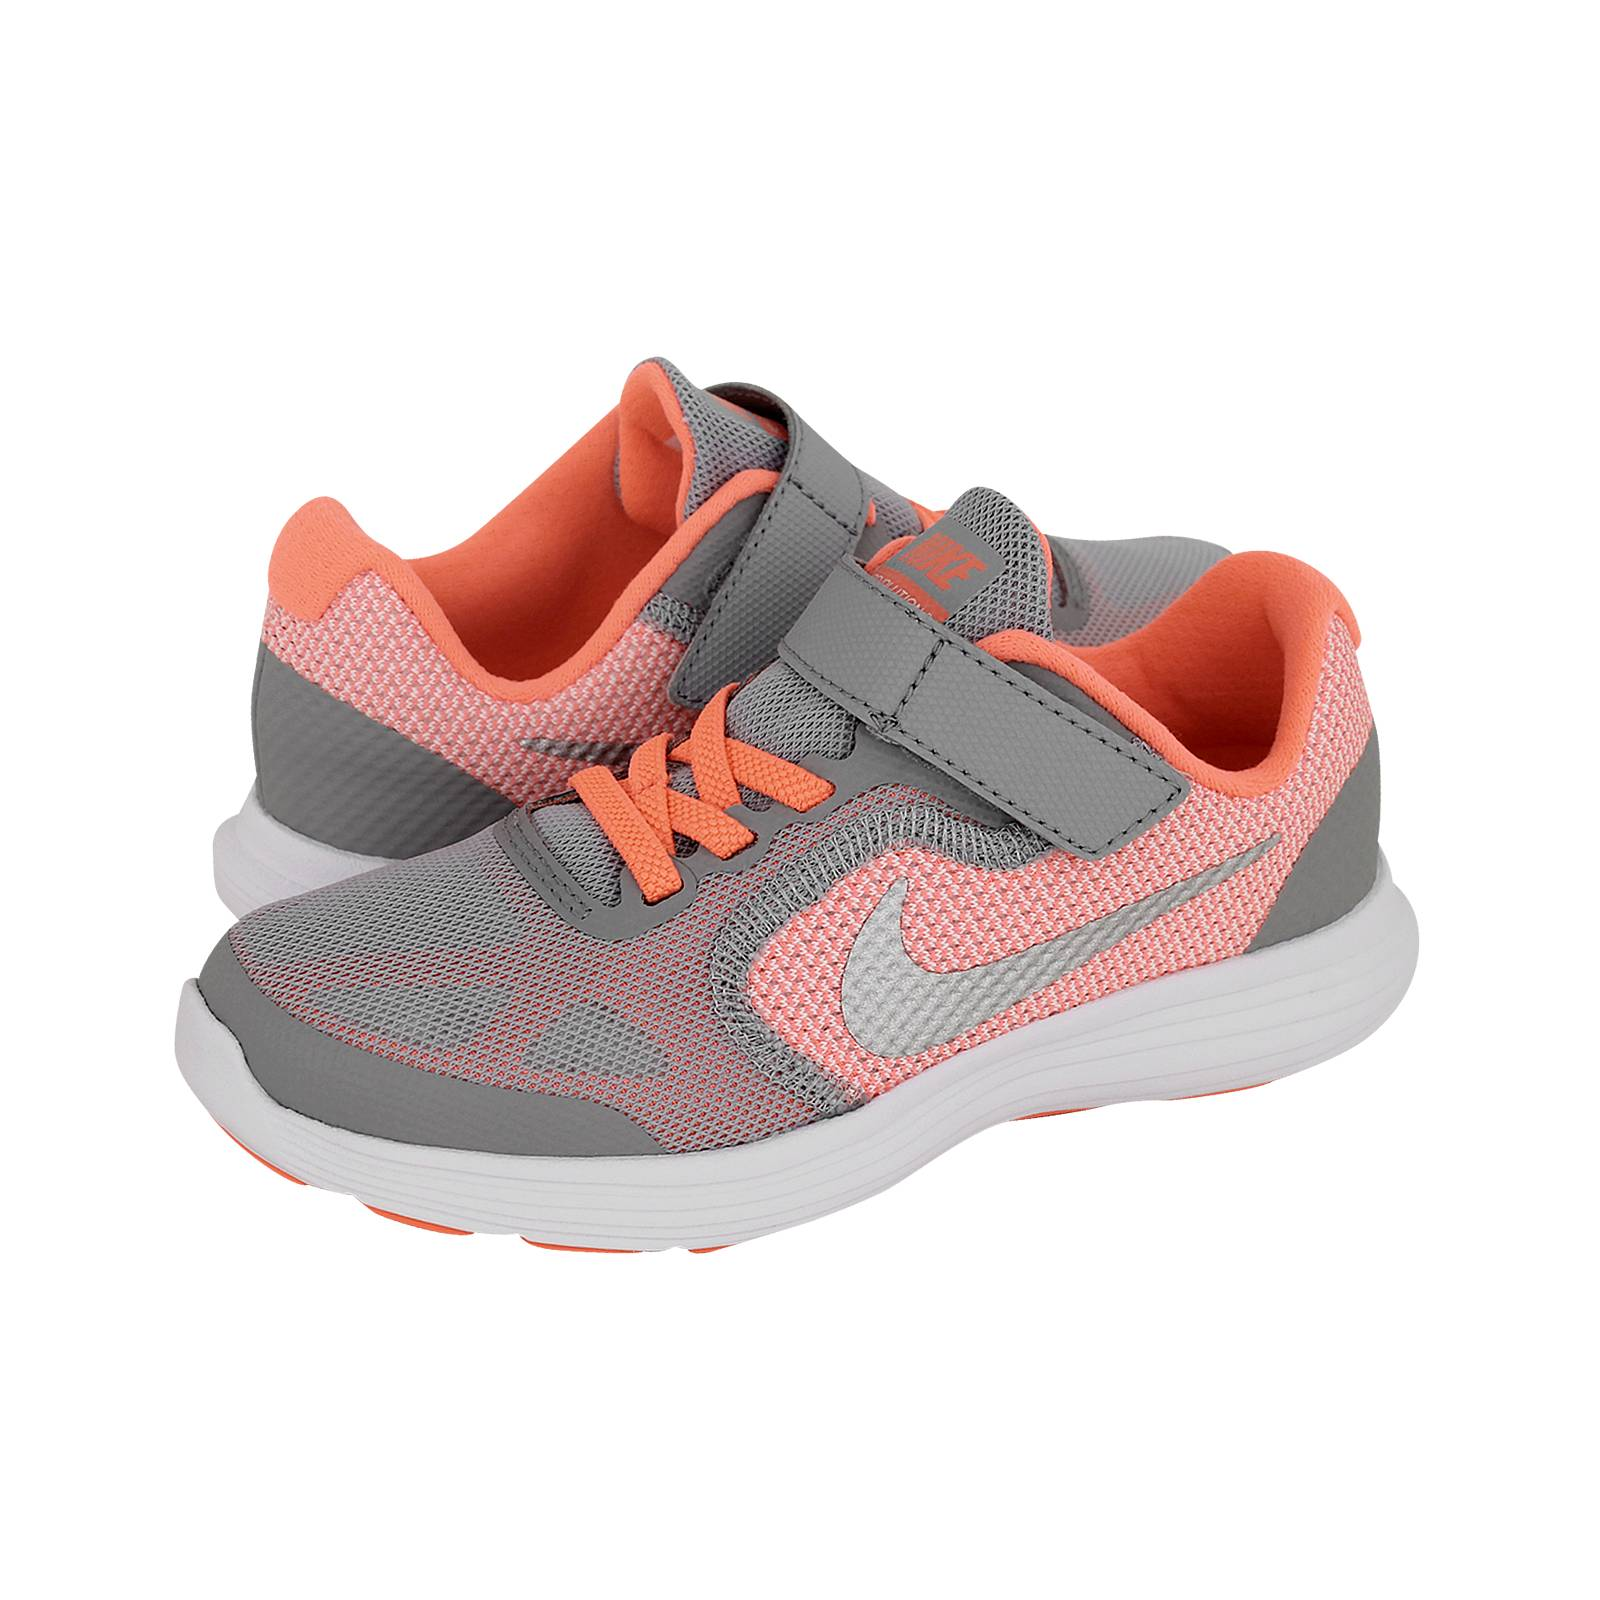 Nike Revolution 3 PSV - Παιδικά αθλητικά παπούτσια Nike από υφασμα ... 401f73aa3f8